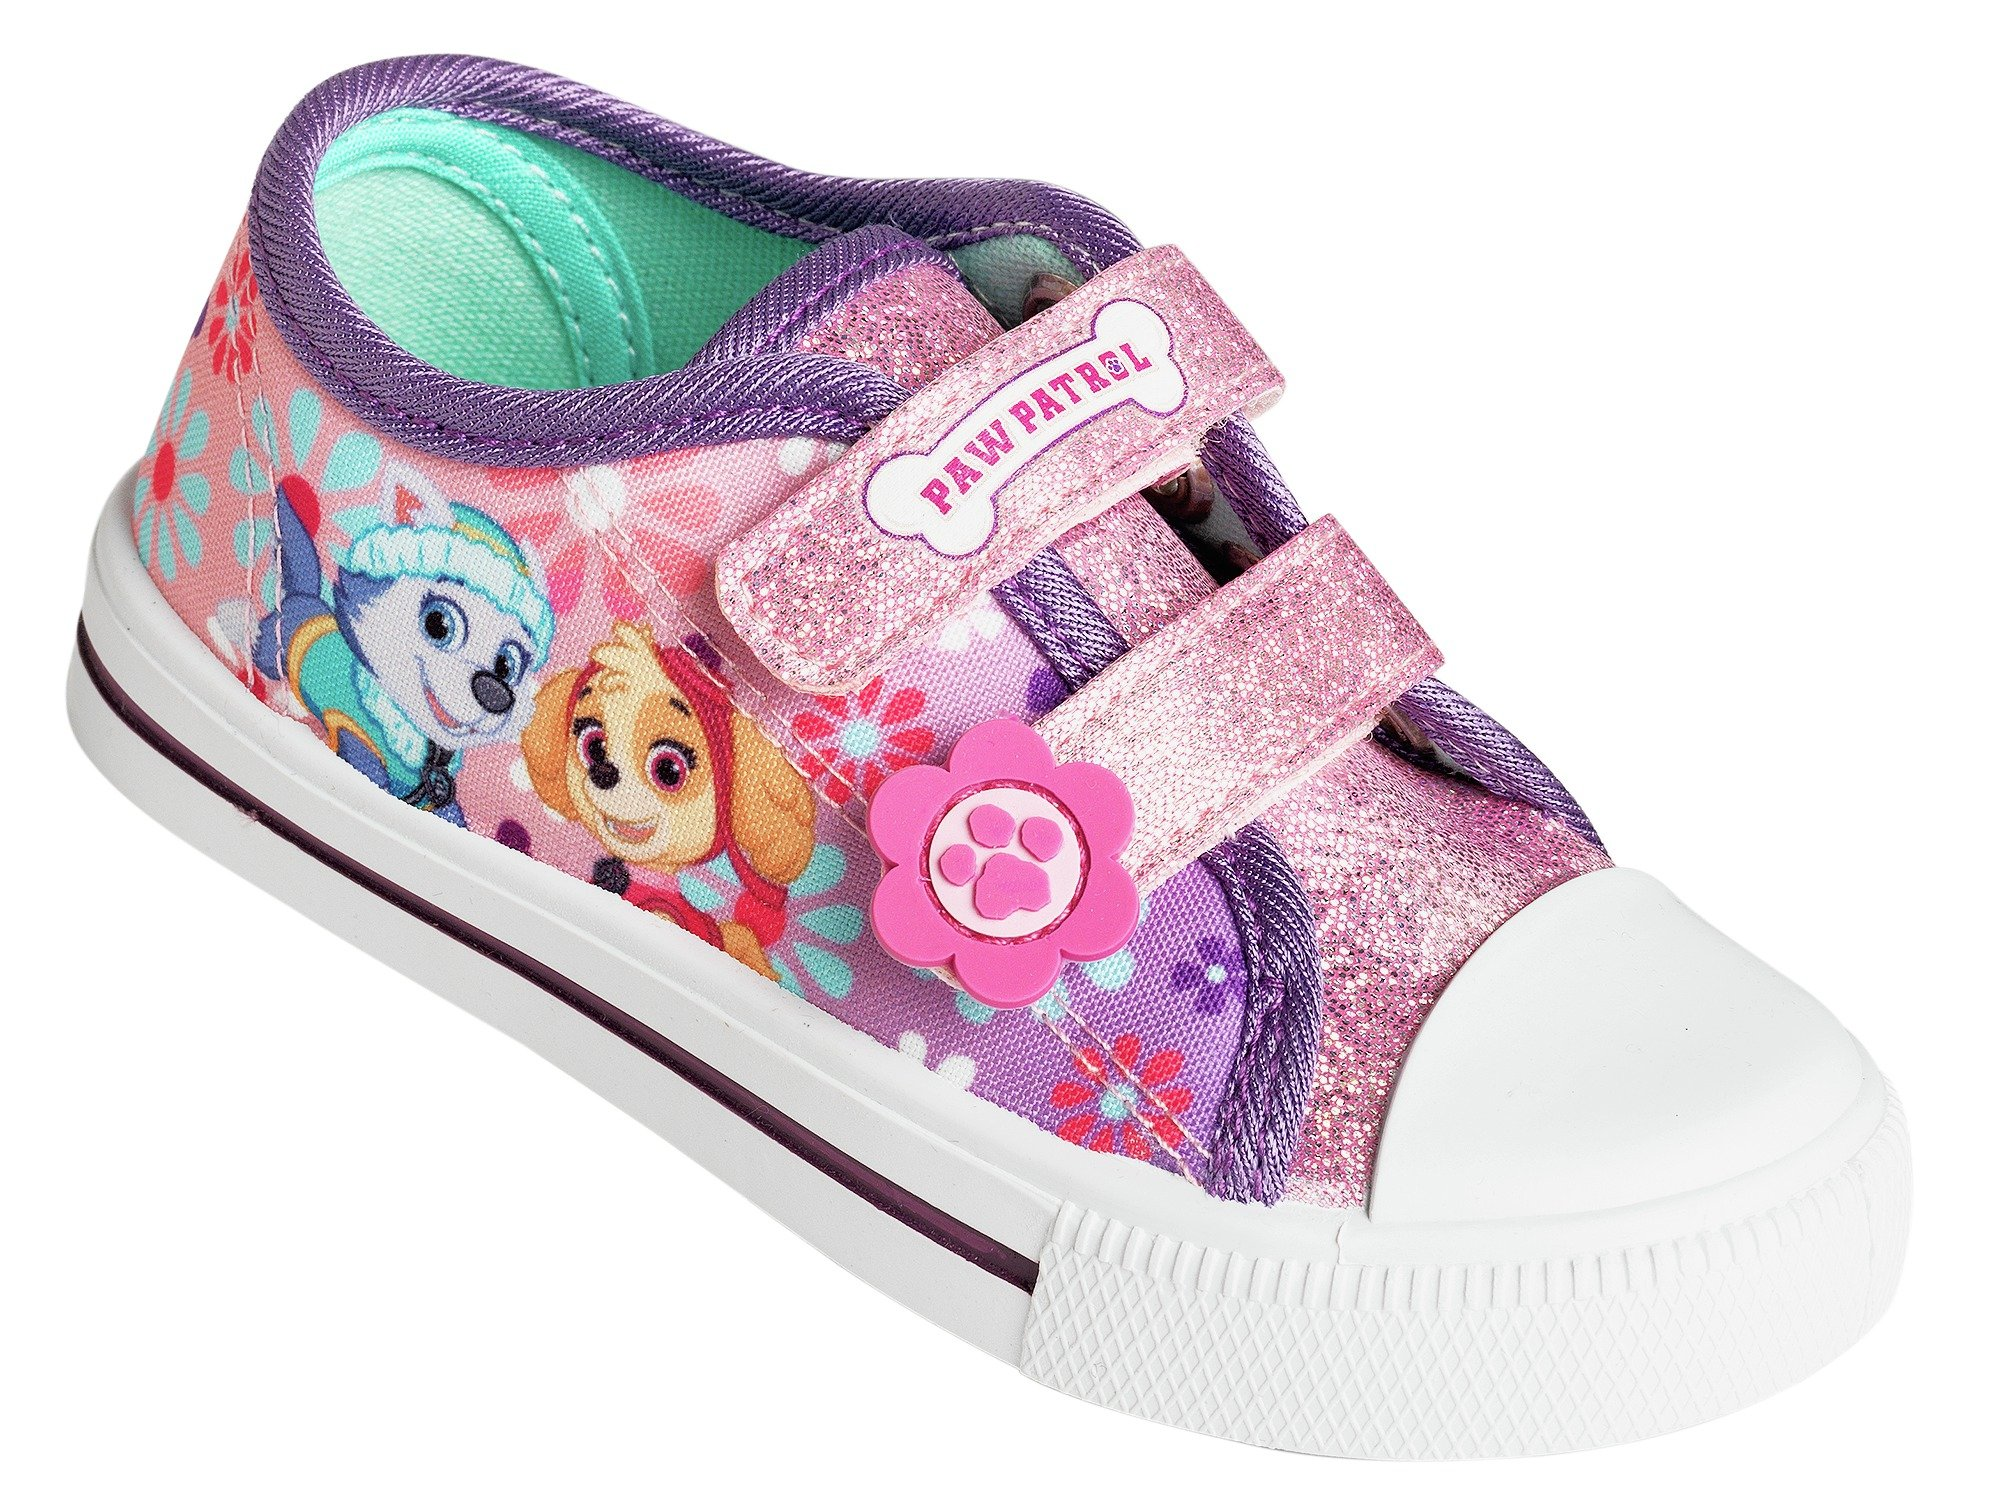 Image of PAW Patrol - Girls Pink Canvas Trainers - Size 6